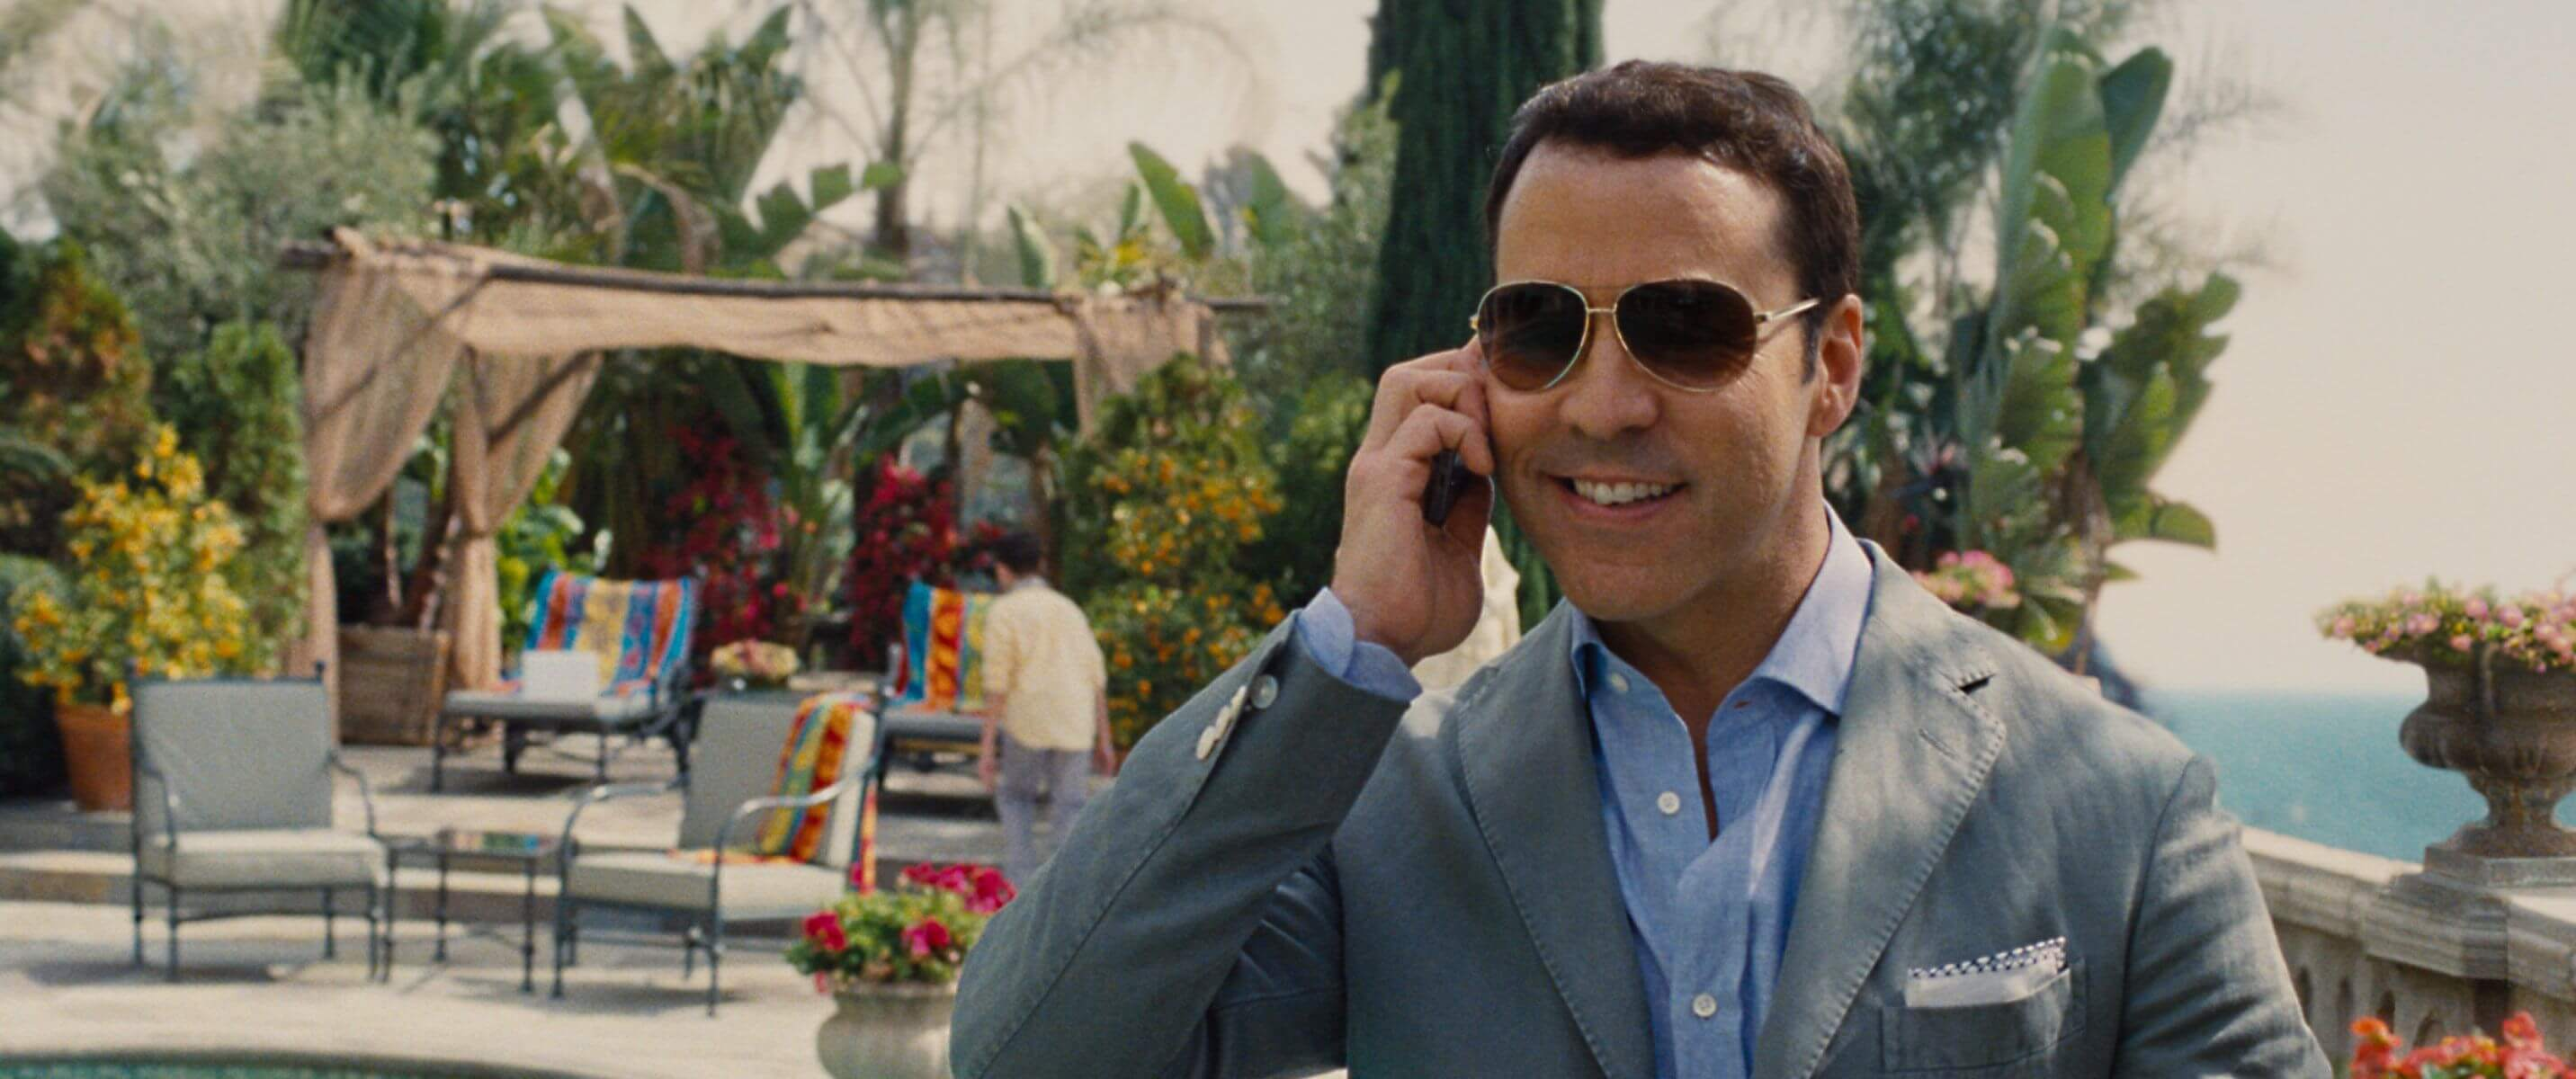 7 Business Lessons I Learned From Ari Gold